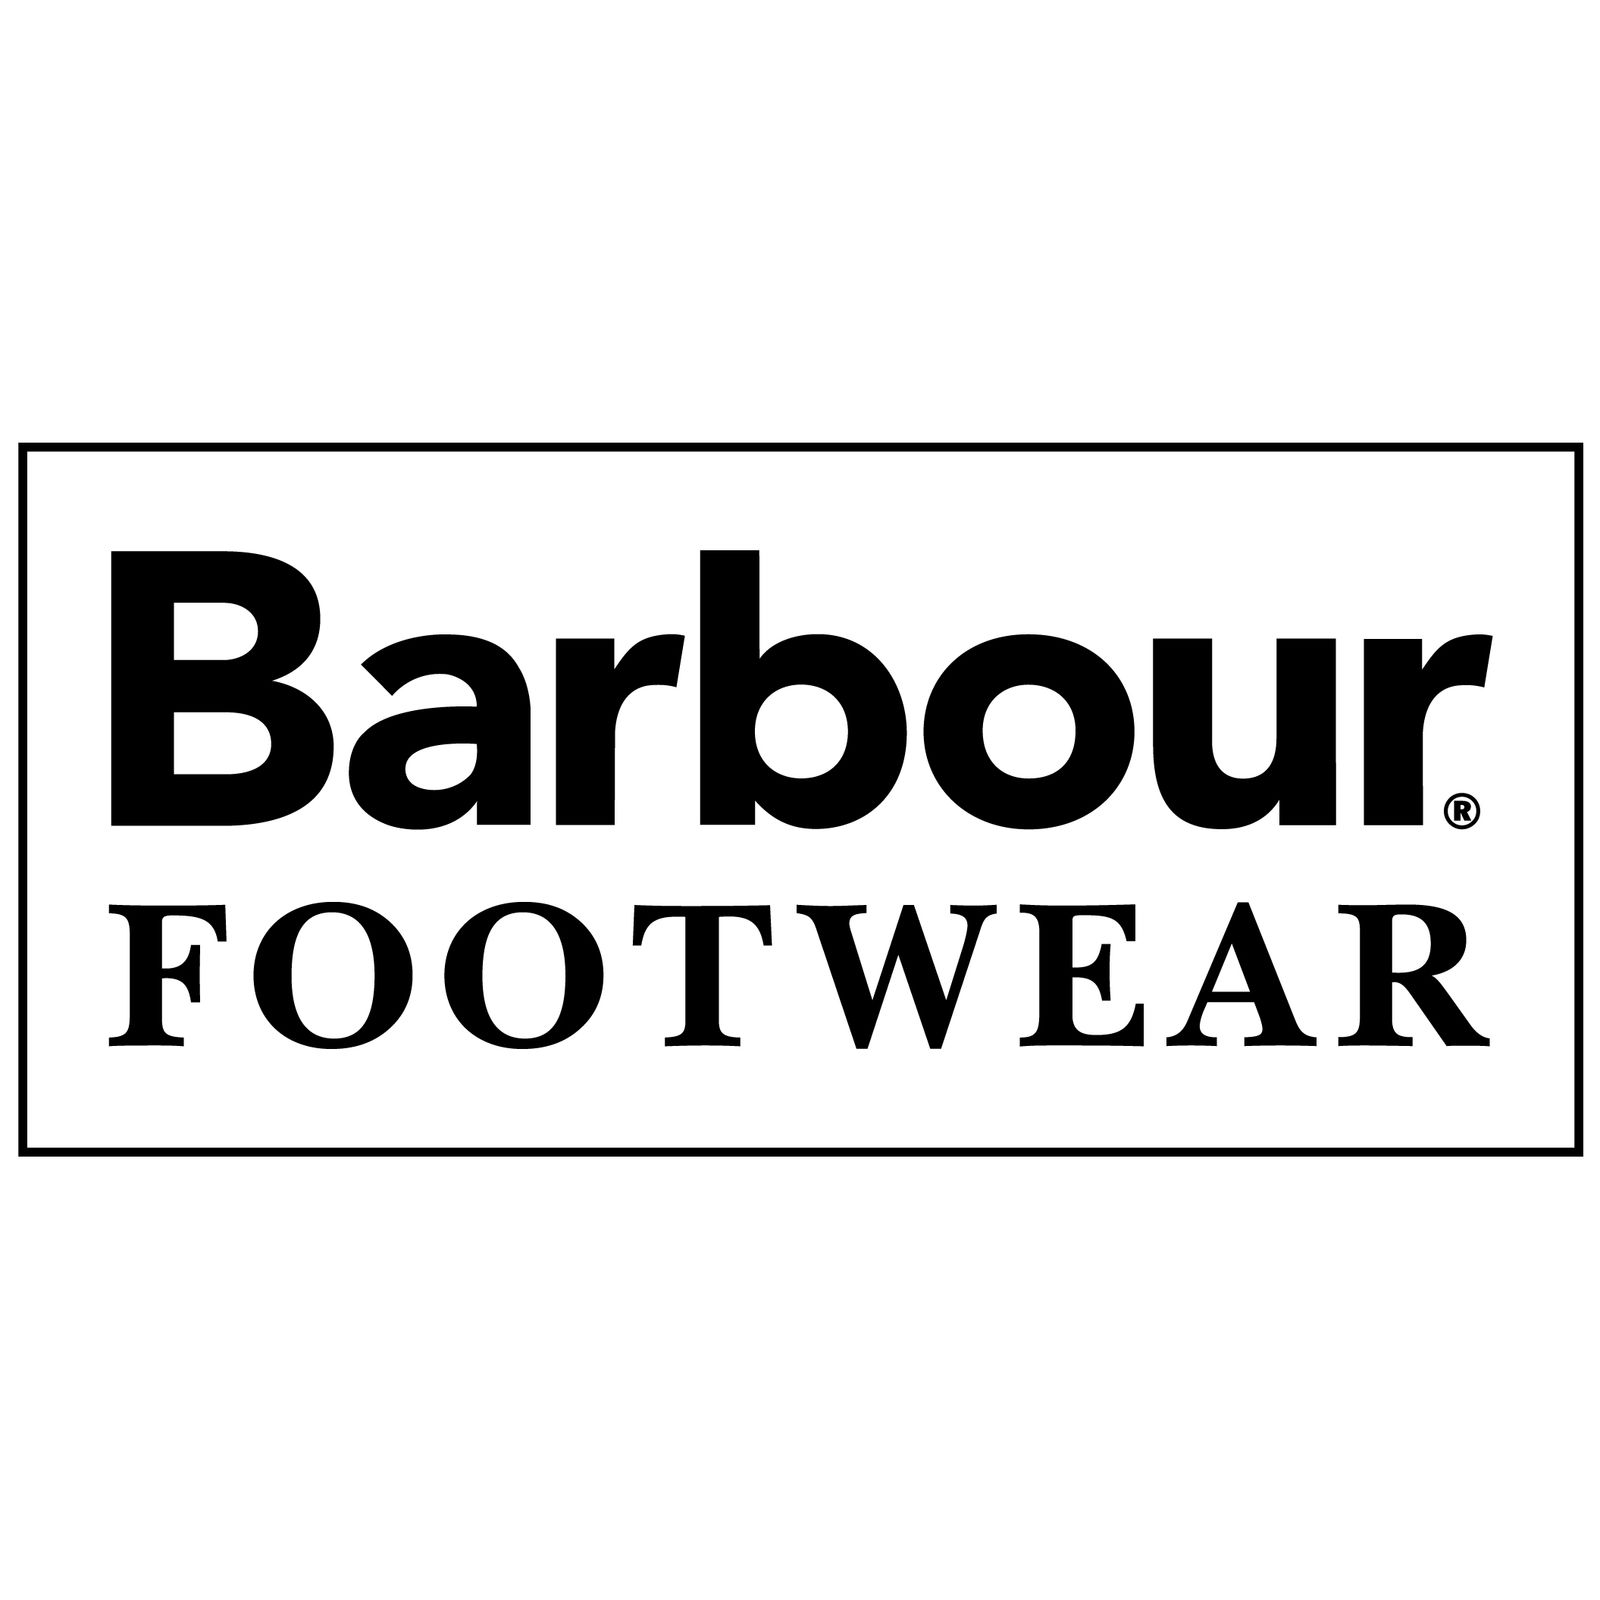 Barbour Footwear (Image 1)